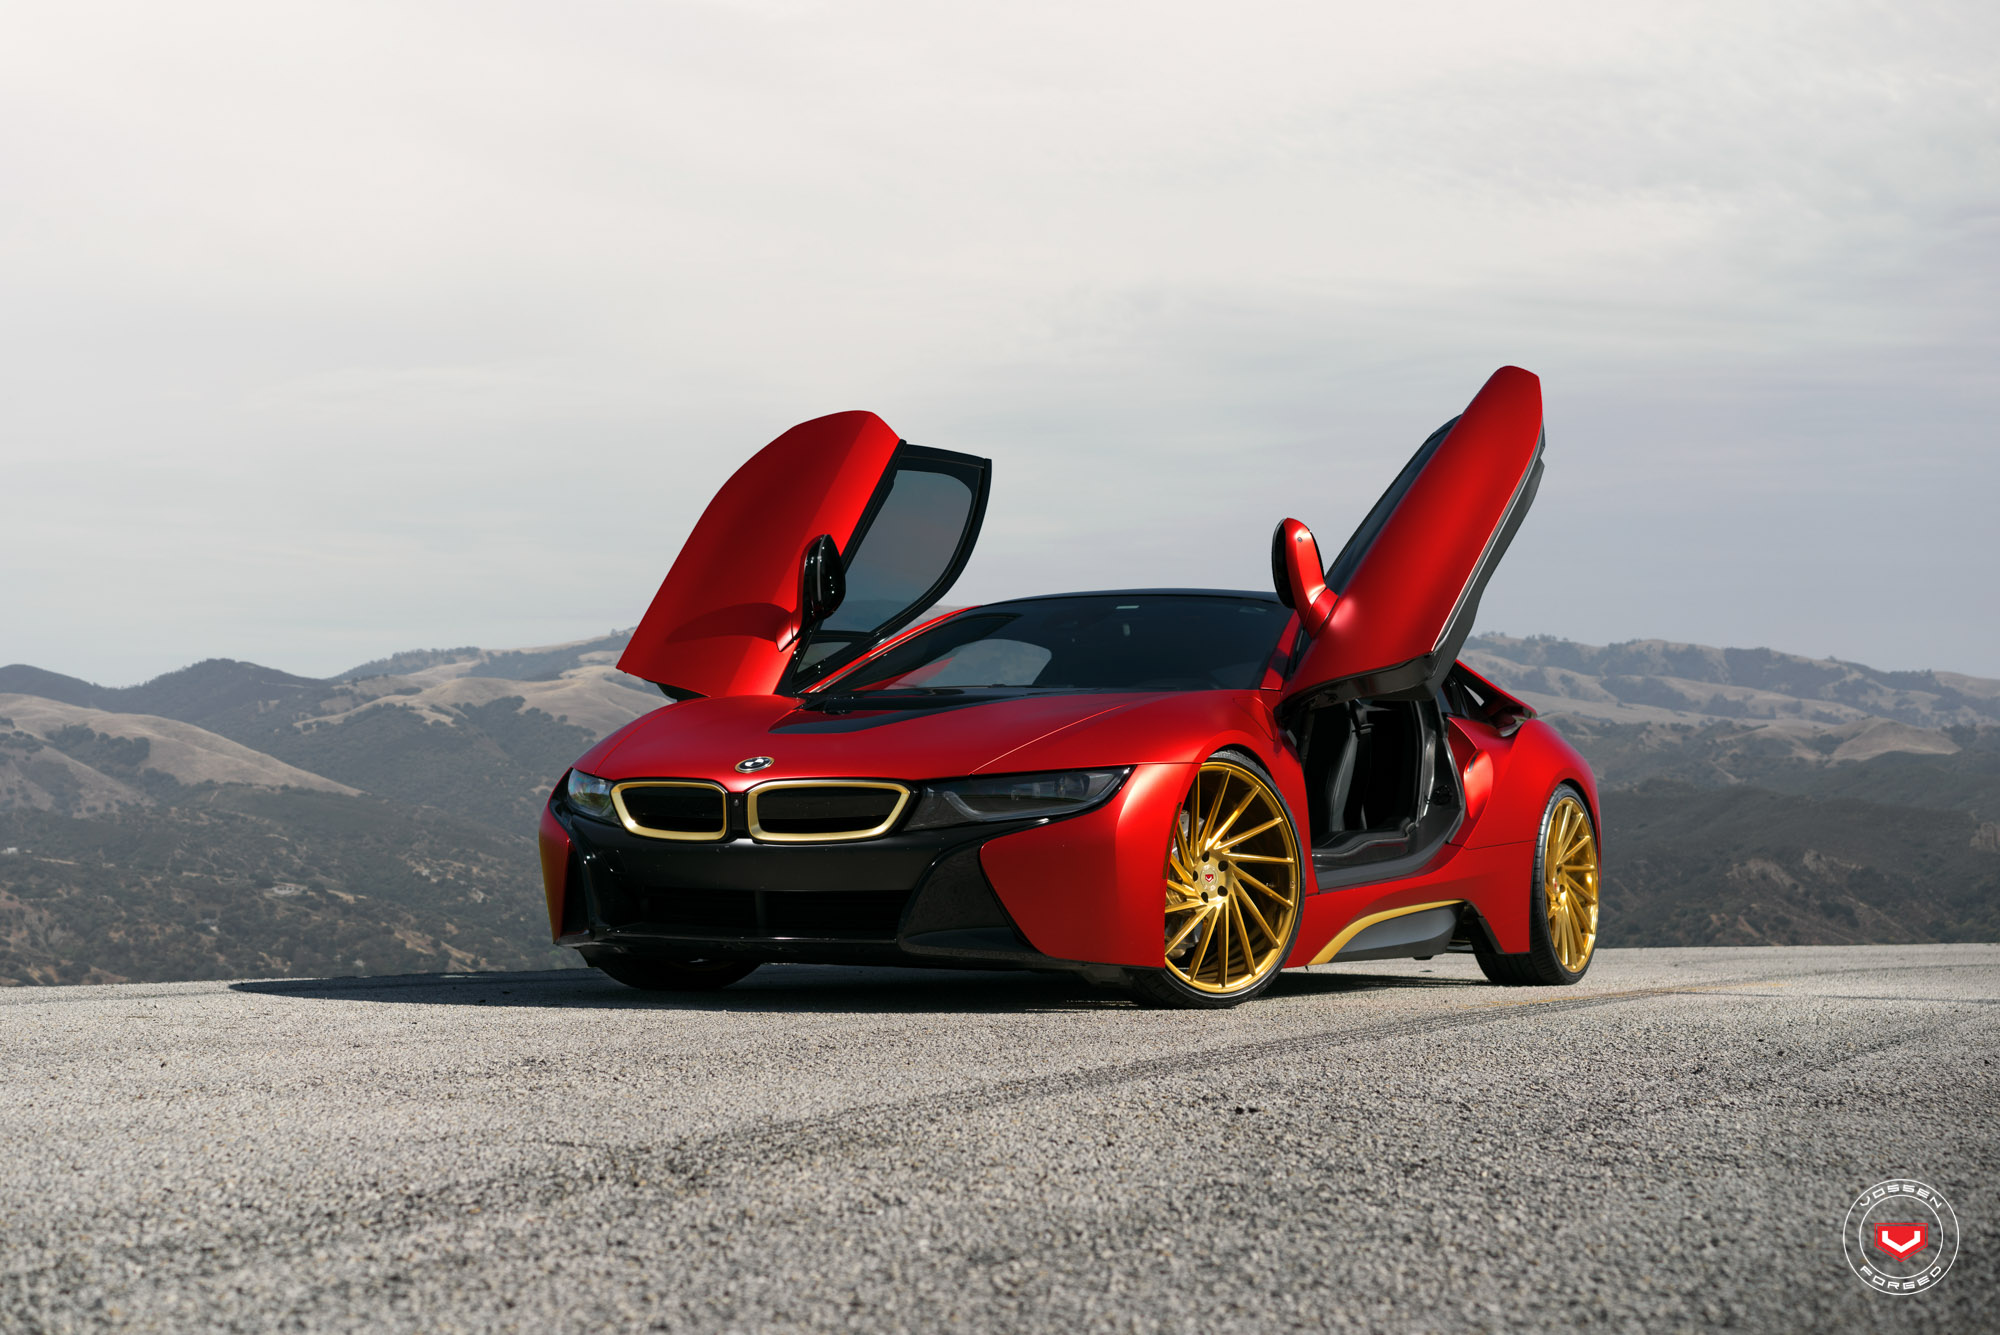 Austin Mahone S Iron Man Bmw I8 Makes More Sense Than The Audi R8 Autoevolution